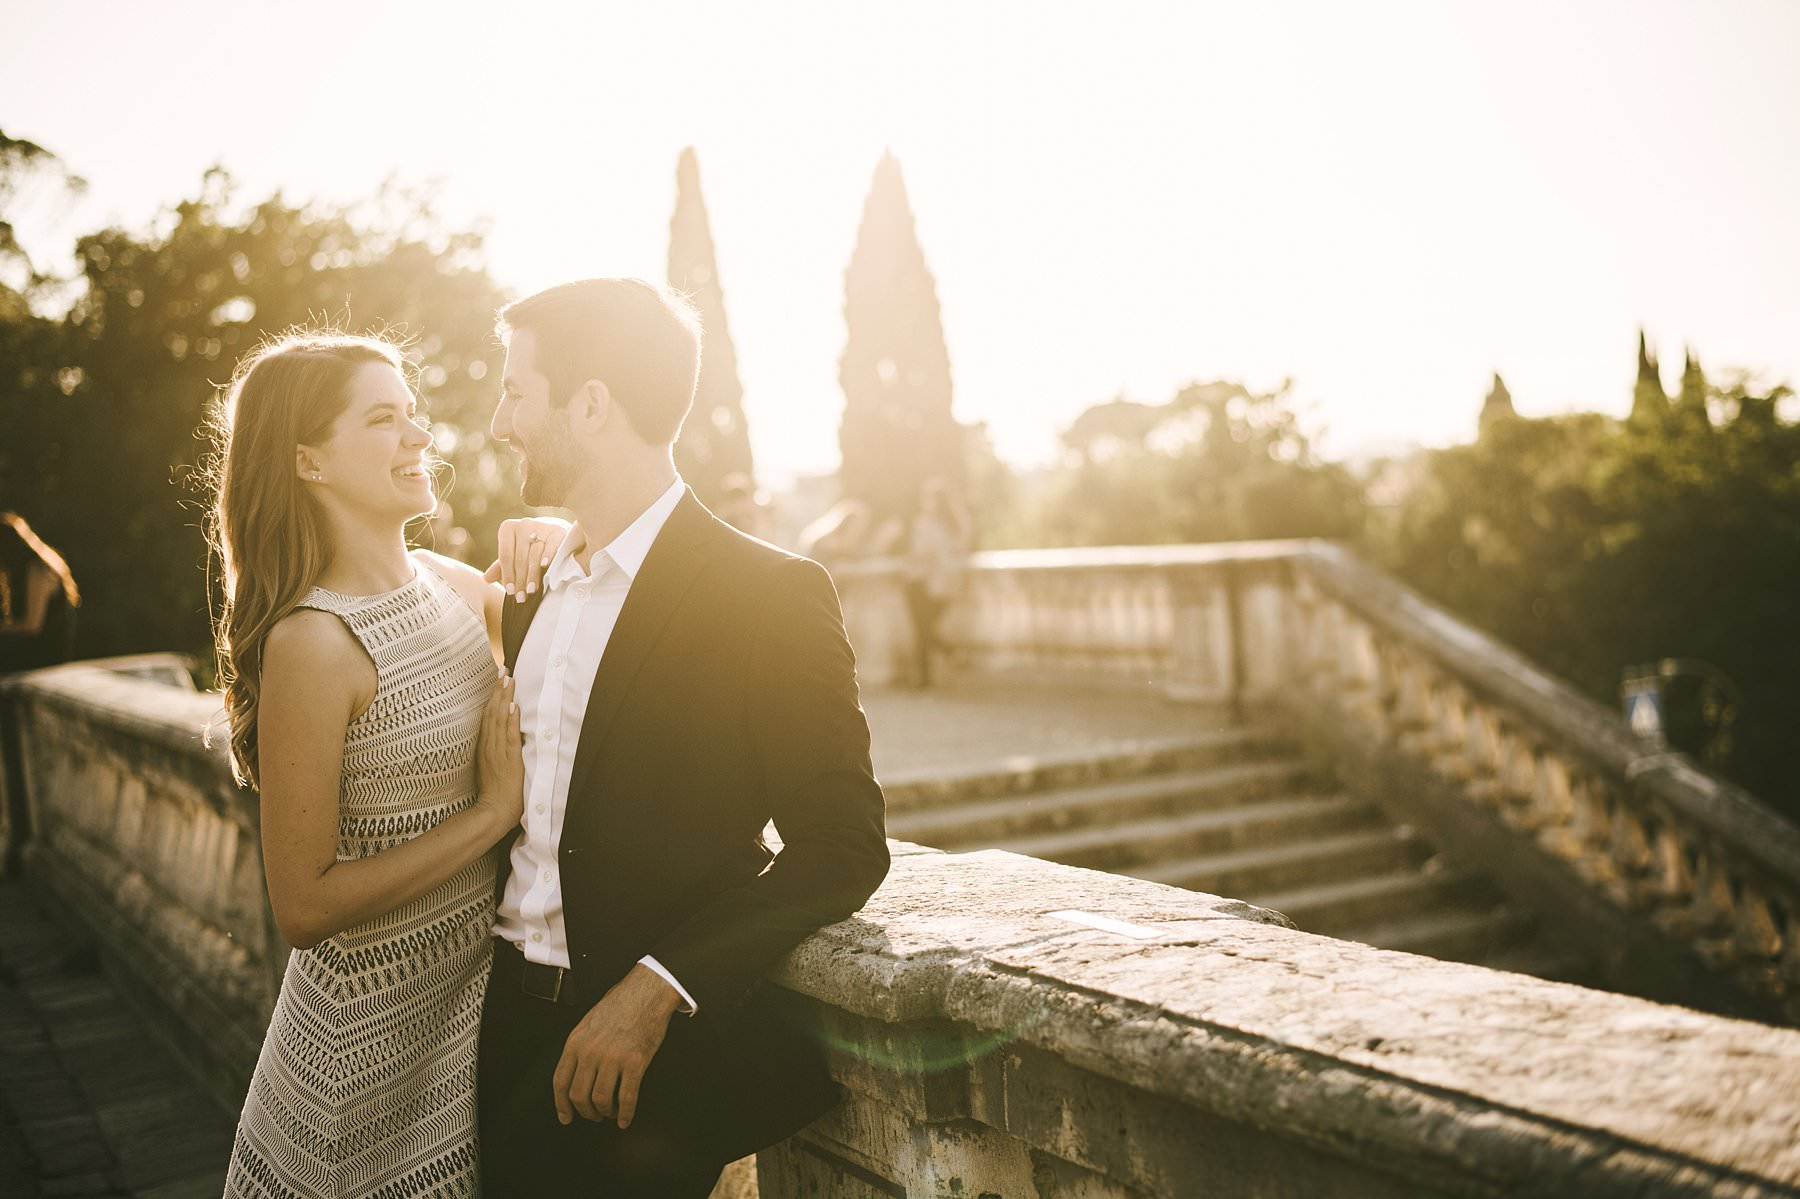 A sunset photoshoot to cherish your engagement forever. Some moments in life deserve to be celebrated in a special way. A way that makes them even more unique and unforgettable. That's the case of a birth, a family milestone, a wedding, or an engagement. And what's better than a sunset photoshoot in an incredible city like Florence, to honor such an occasion? Considered the cradle of the Renaissance, Florence is full of fascinating spots that work perfectly as settings for a sunset photoshoot. Its very heart, where white marble statues give way to wooden portals and to the intricately decorated façades of historic churches, welcomed the couple for a series of shots filled with smiles and emotions